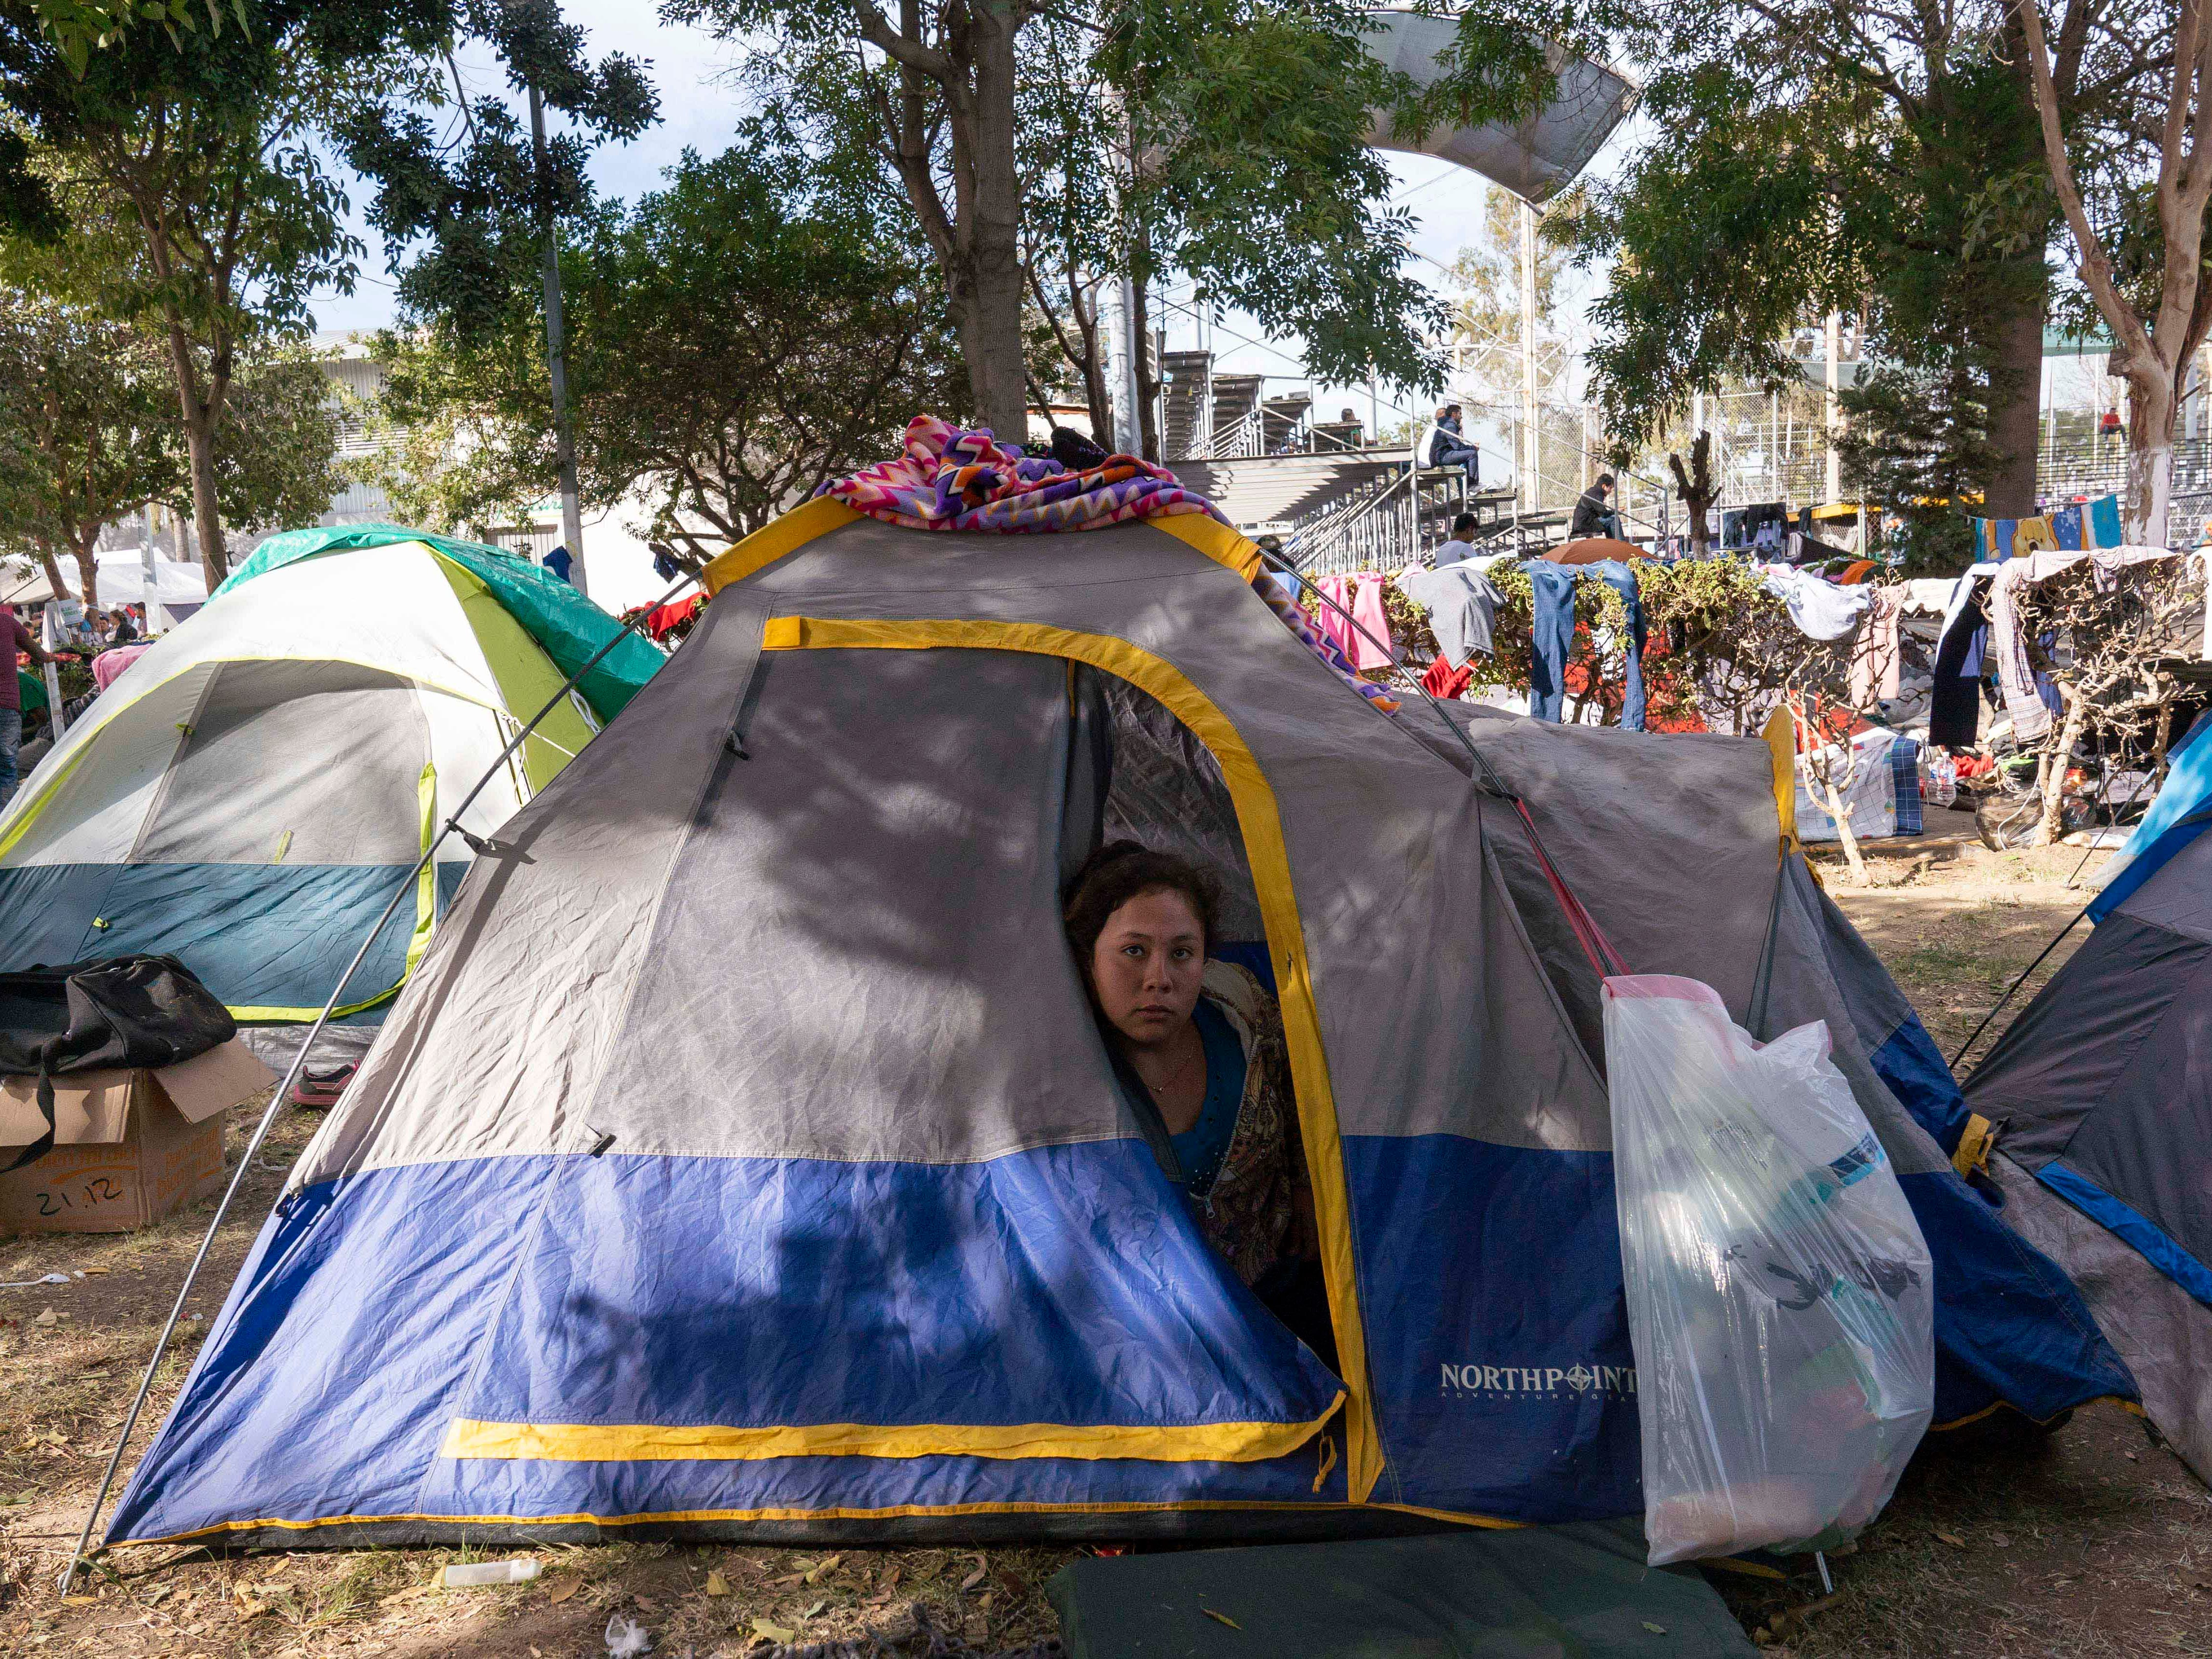 Over 2,500 mostly Central American migrants are currently staying at the Unidad Deportiva Benito Juarez, a makeshift shelter, in Tijuana, Mexico on Nov. 18, 2018. Migrants set up camp around the baseball stadium, propping up tents using whatever materials they have available. Bathrooms and outdoor showers were installed in the outfield.